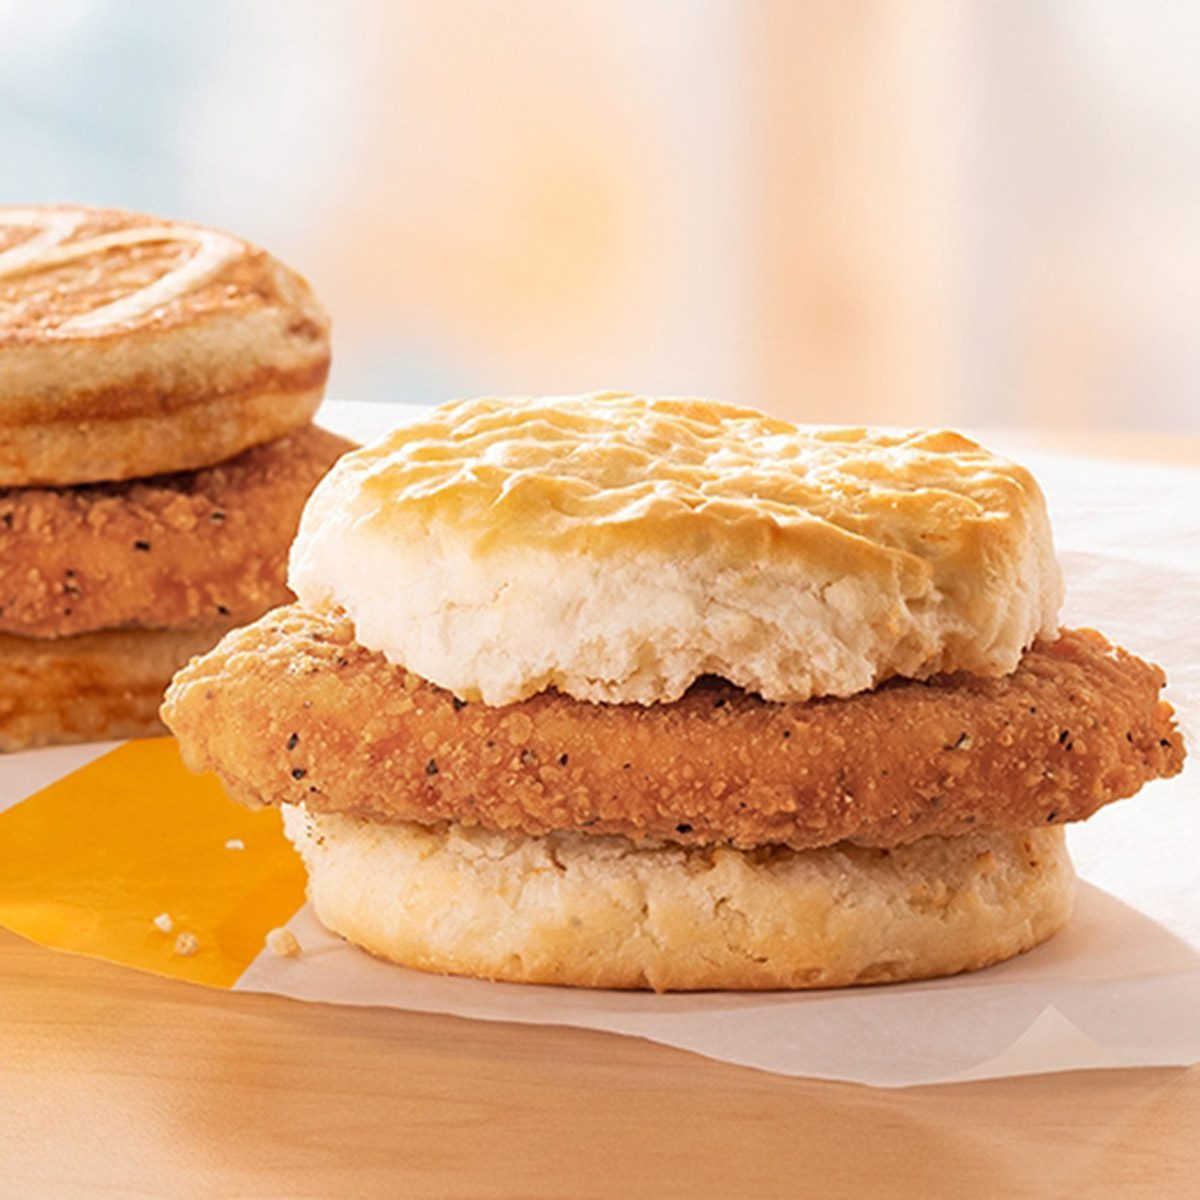 McDonald's Officially Unveiled Chicken McGriddles and McChicken Biscuits